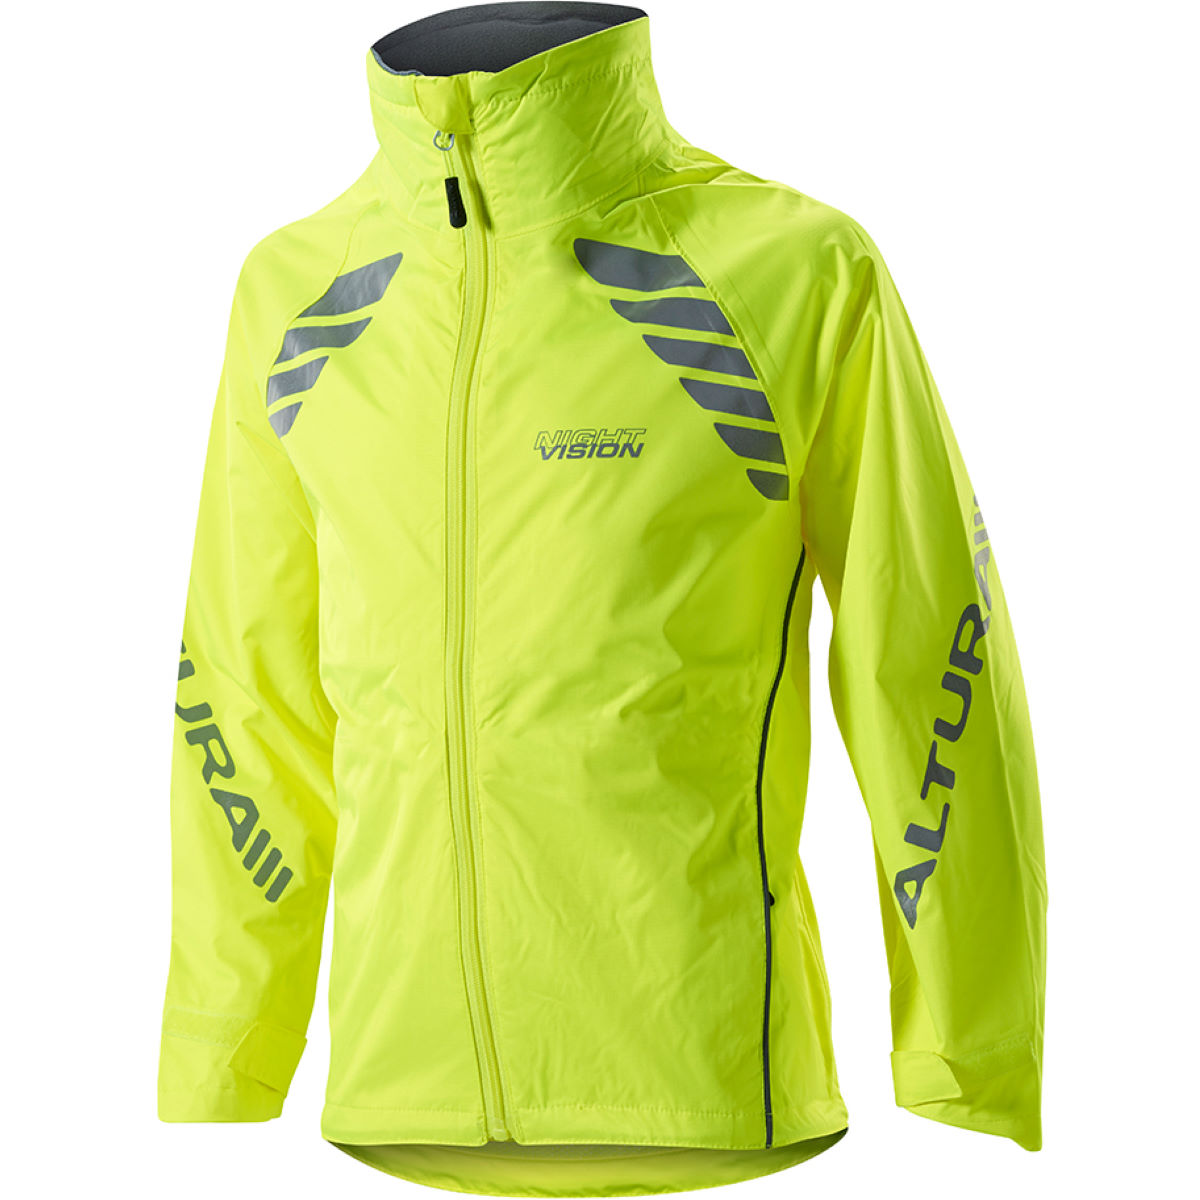 Veste Enfant Altura Night Vision - 7-9 years Jaune Vestes imperméables vélo